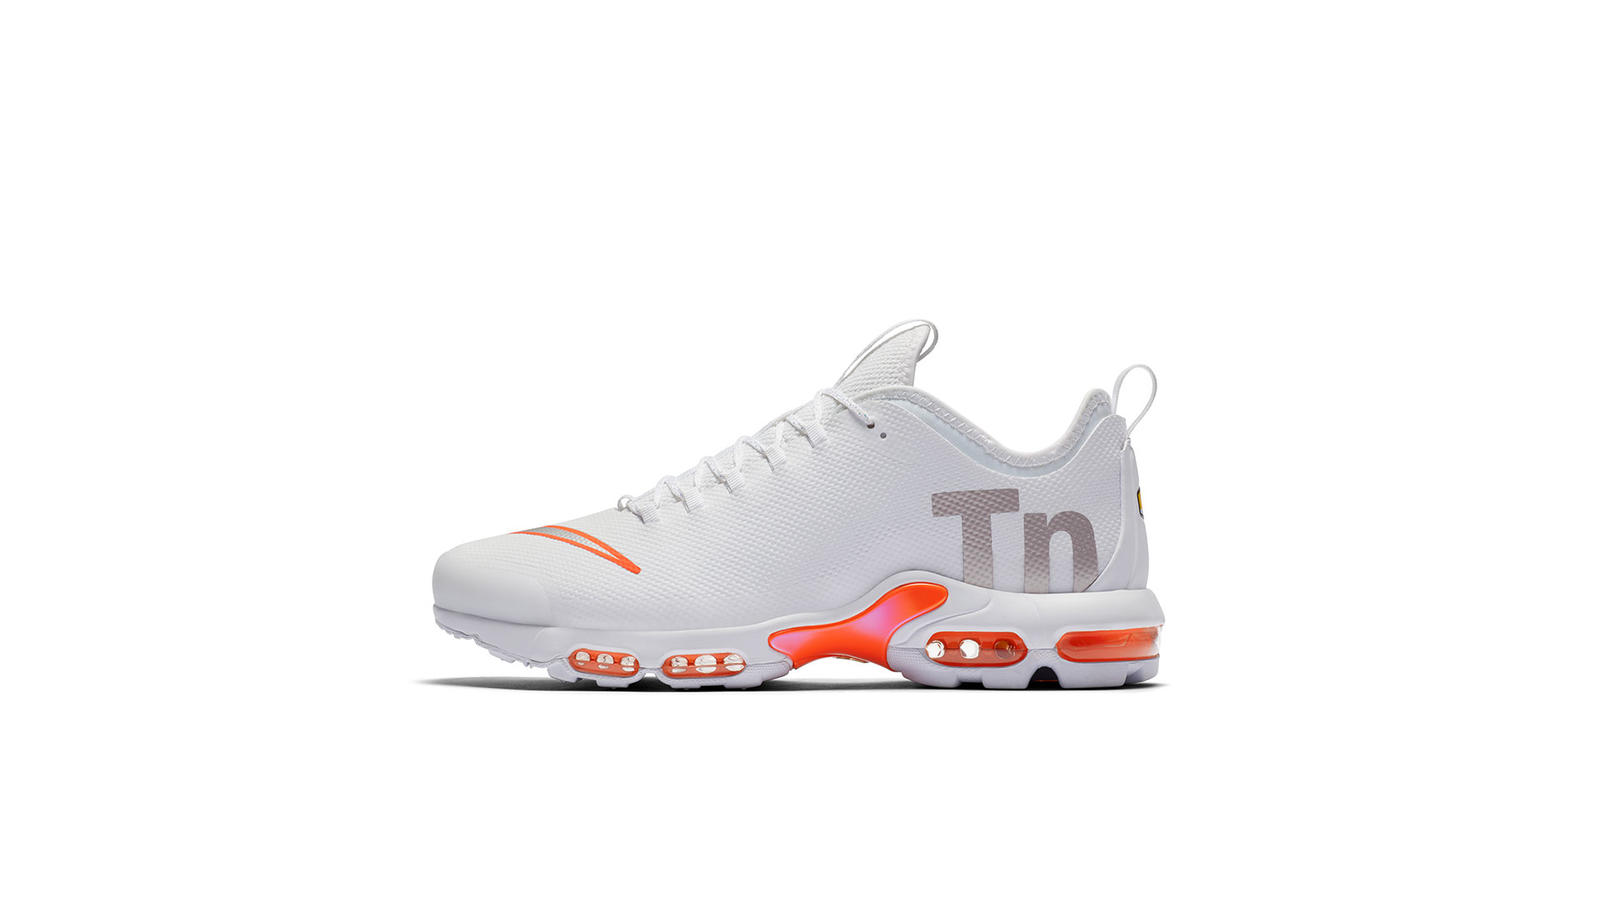 brand new 82ef3 a208f May 16, 2018 - The Nike Air Max Plus hit shelves in 1998 and launched into  global popularity with its daring design and innovative manufacturing  background.